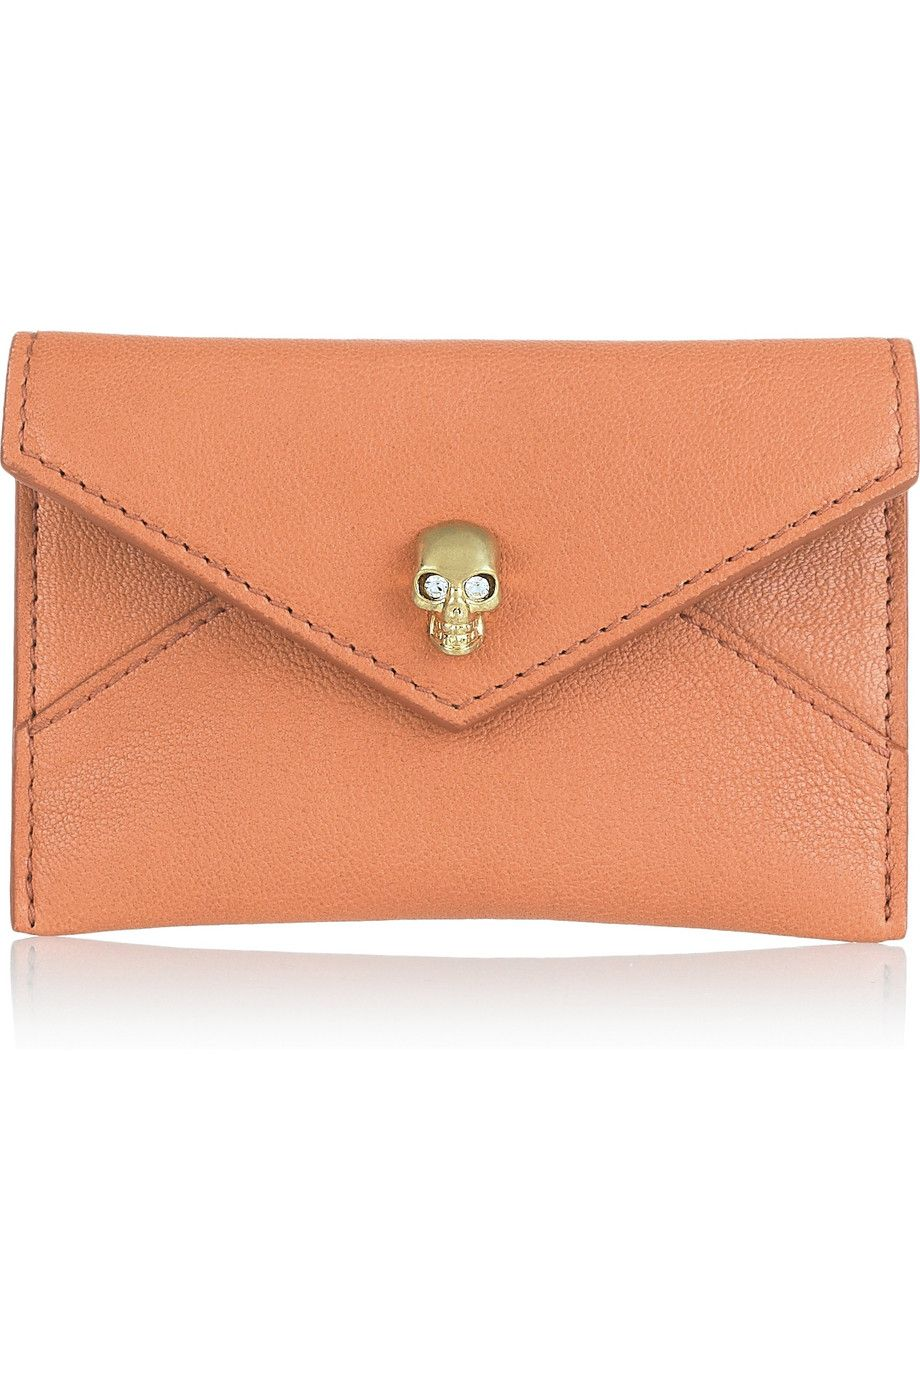 Alexander mcqueen card holder leather leather